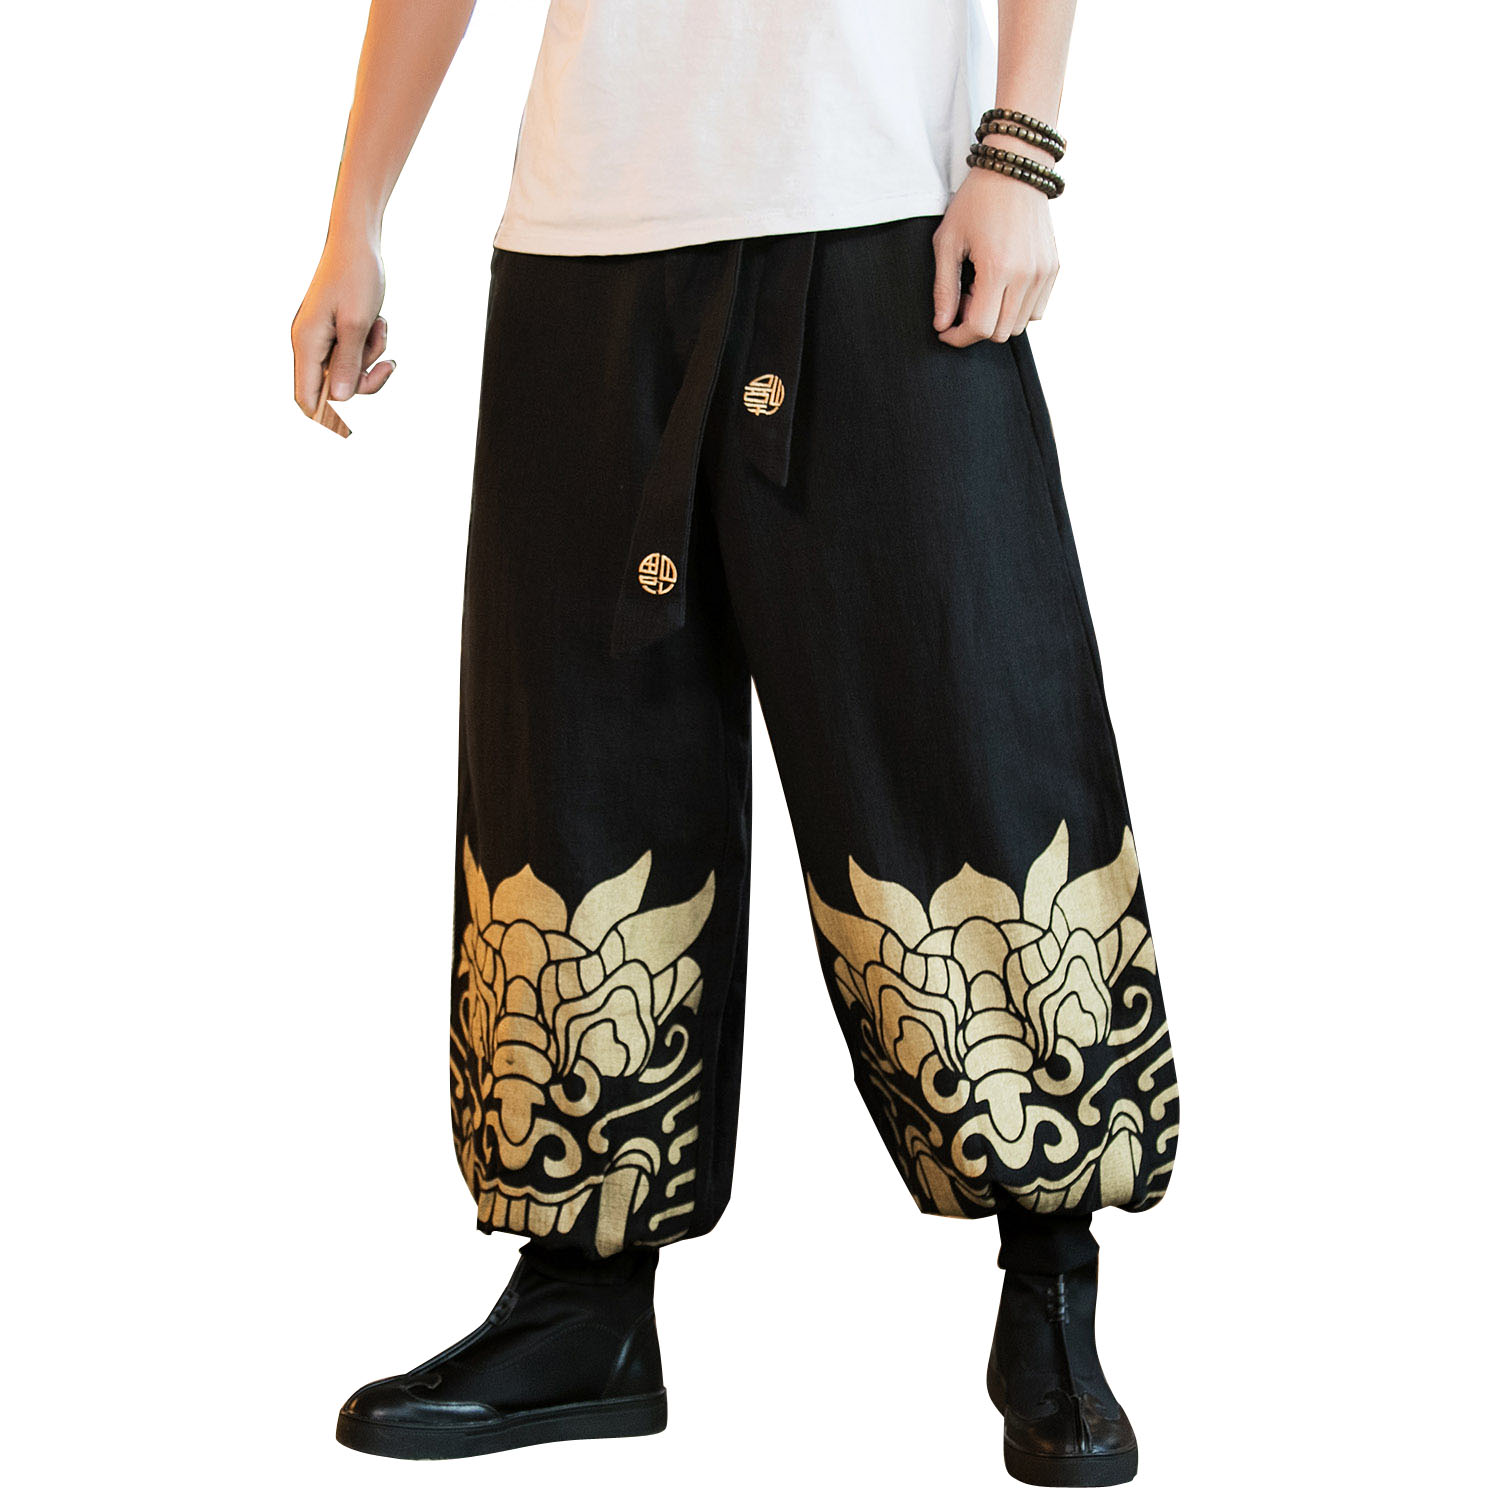 Chinese Style Men's Cotton Linen Casual Pants Wide Leg Printed Harem Pants Male Fashion Loose Trousers